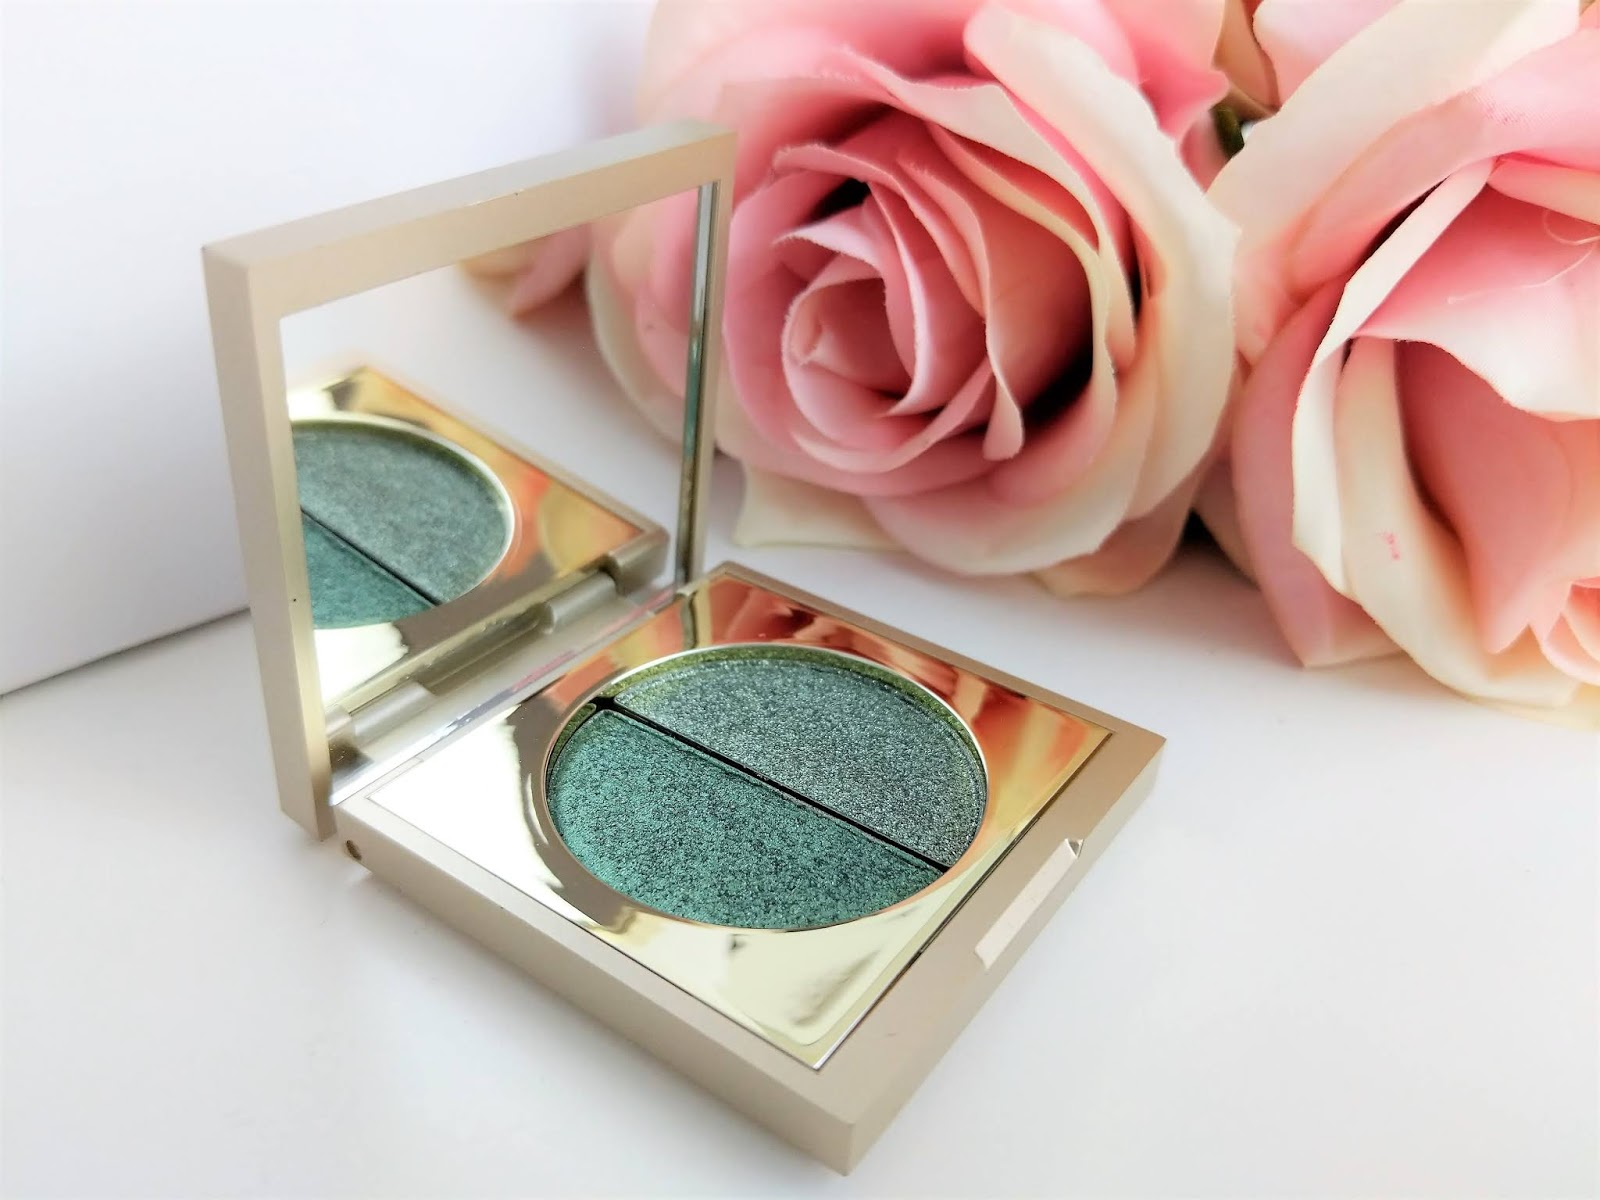 Stila_Vivid_and_Vibrant_Jade_Duo_Eyeshadow